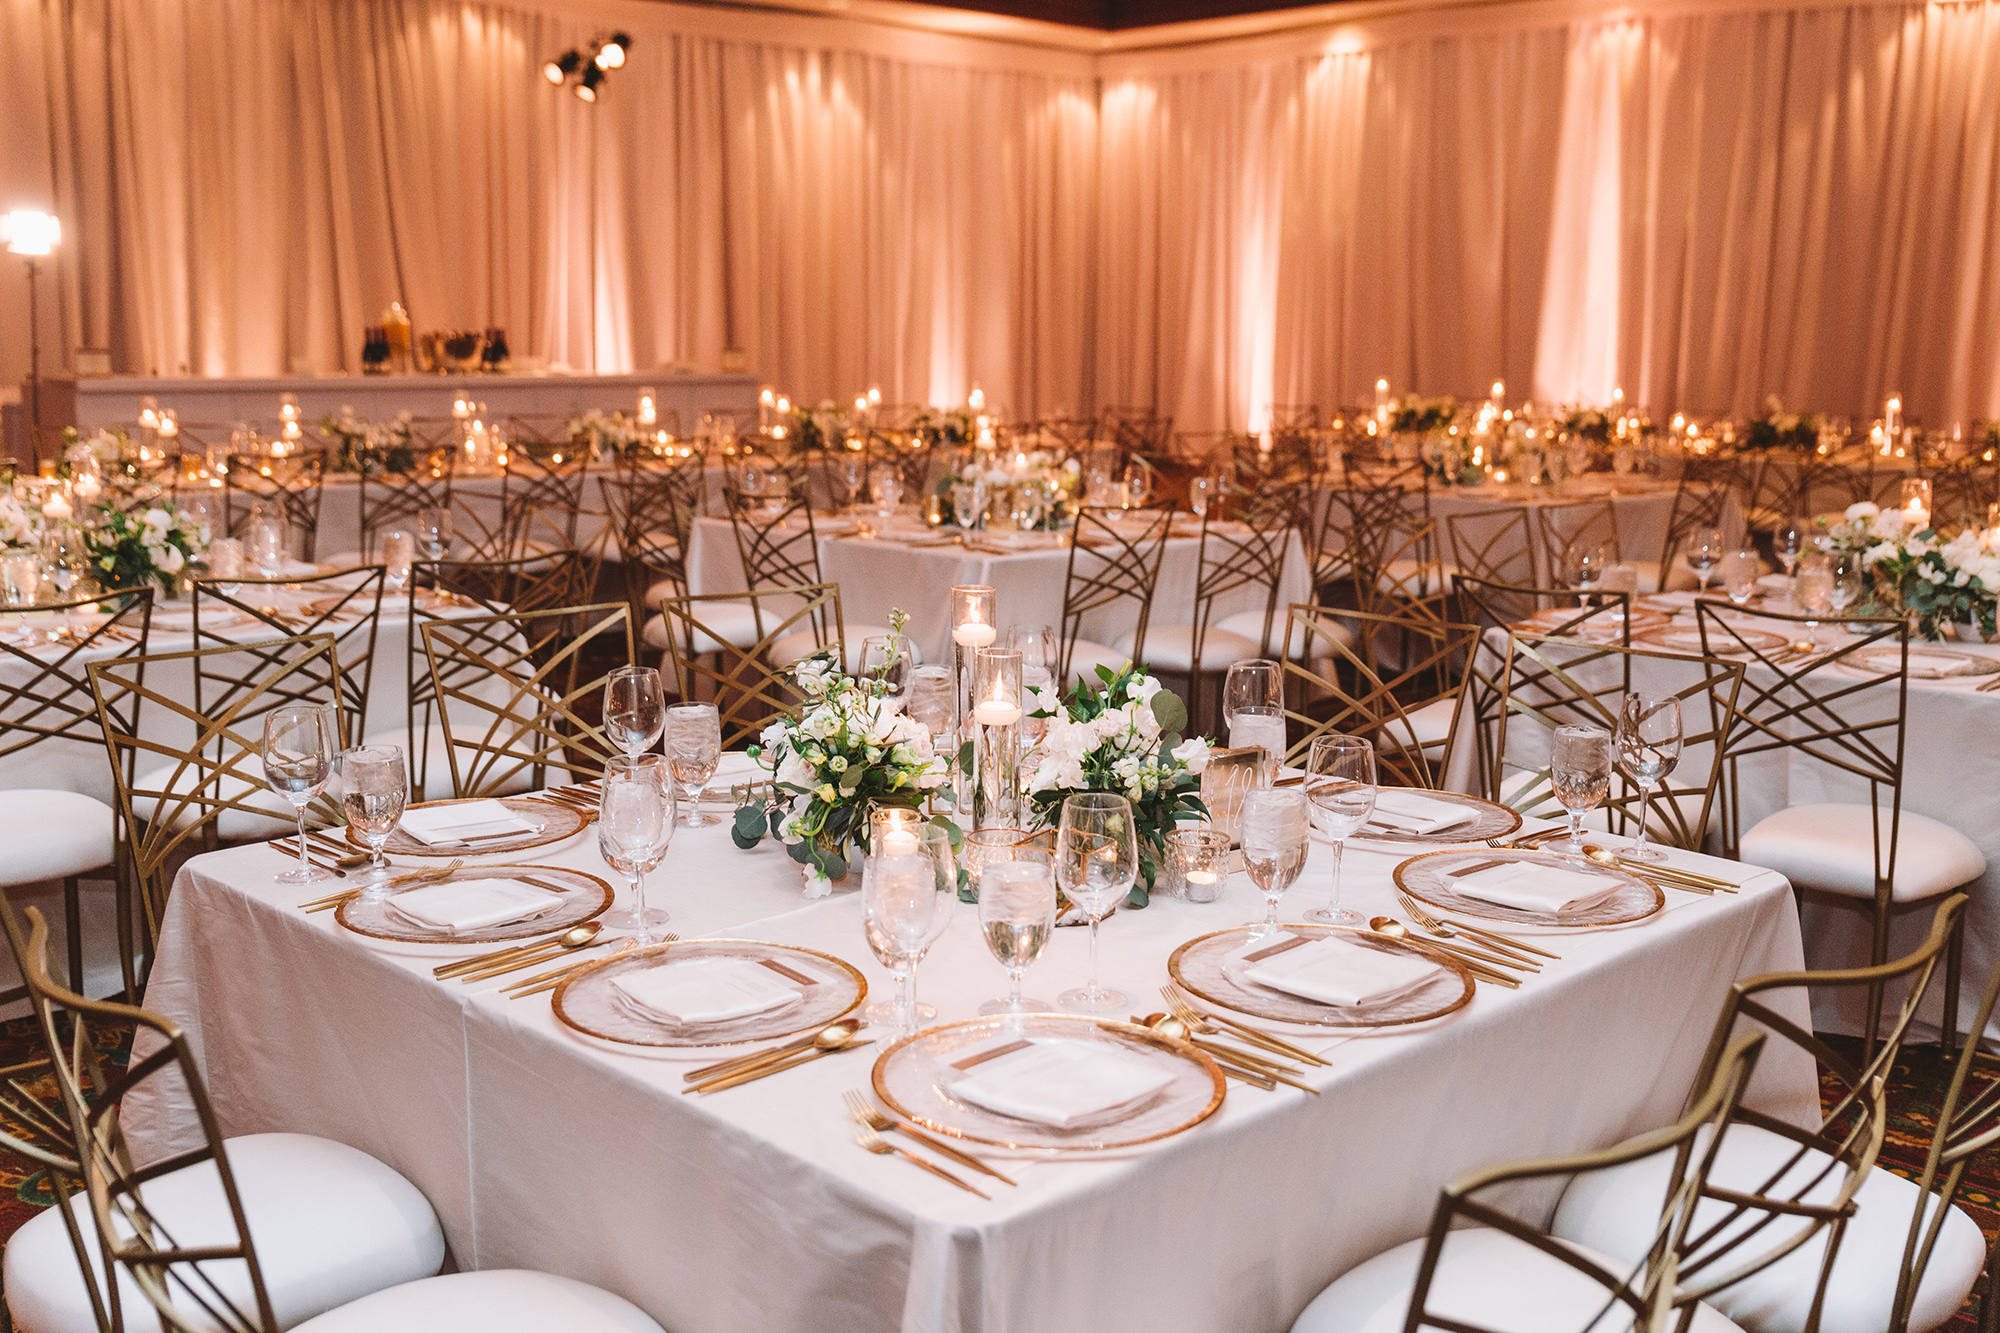 Billie and Kayes wedding at La Quinta Resort is the epitome of classic California weddings